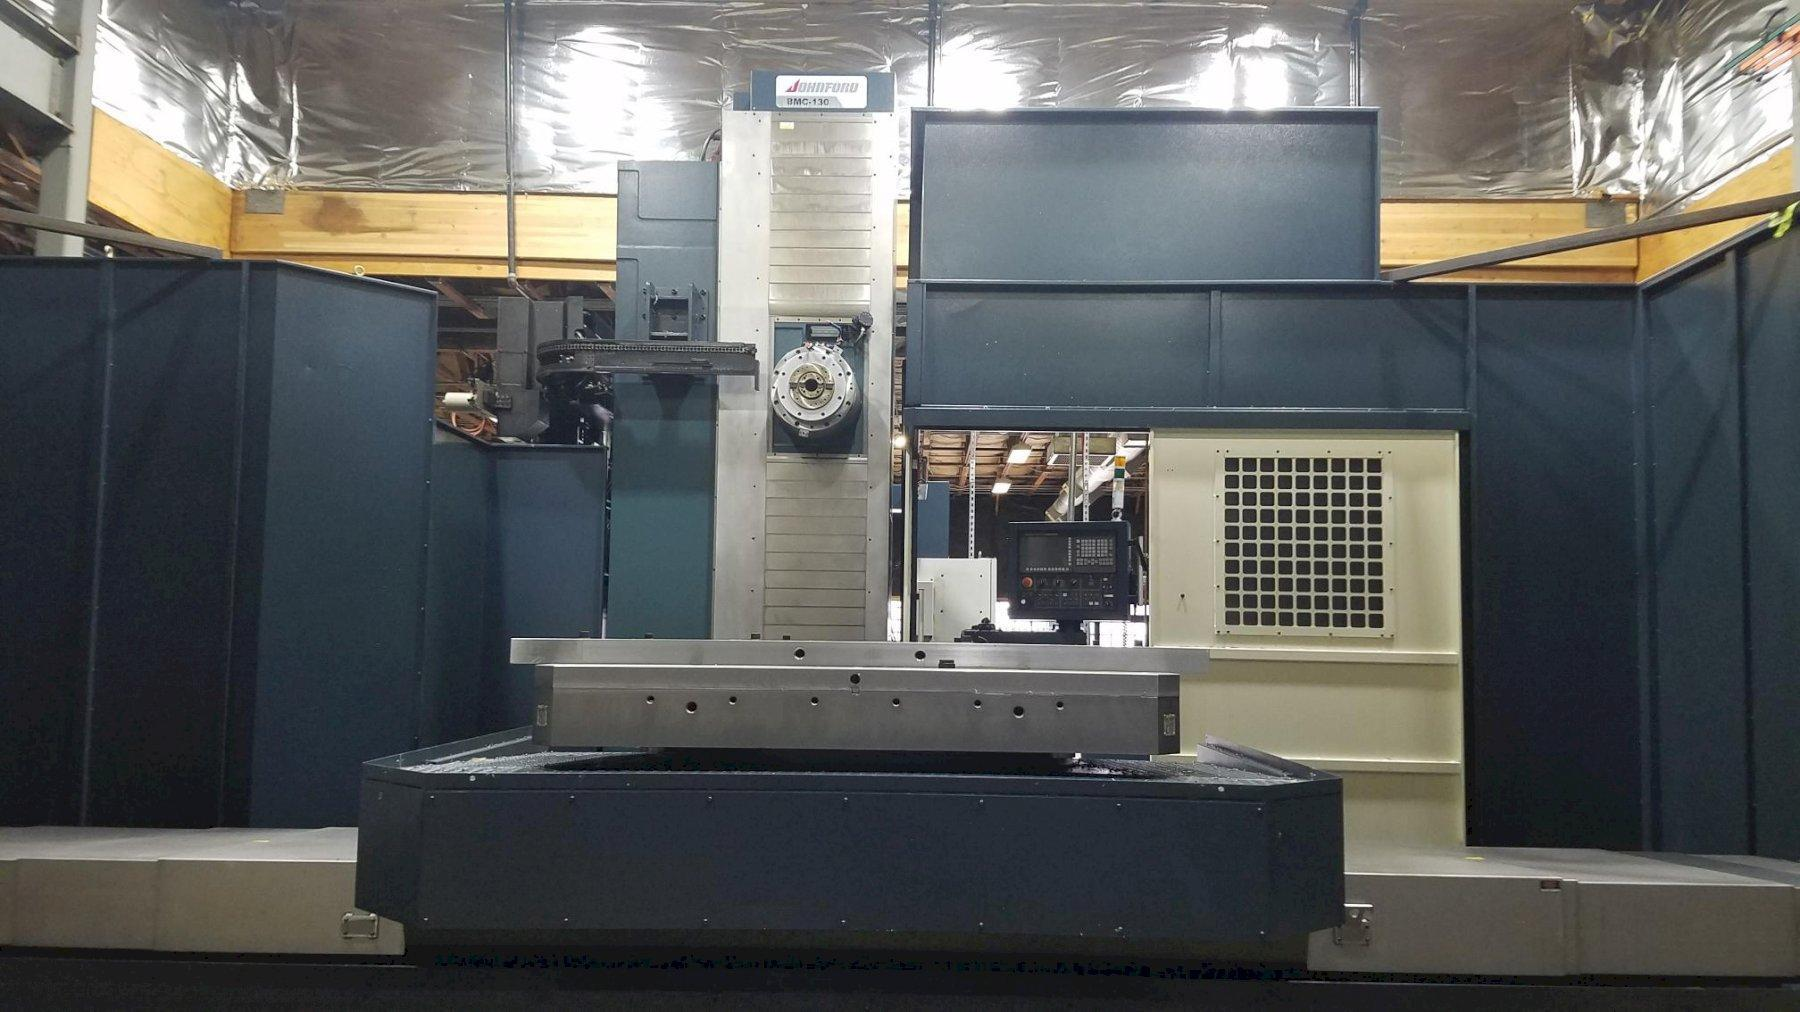 "Johnford BMC-130 5-Axis CNC Horizontal Boring Mill, Trvls: X-118"", Y-90.5"", Z-63"", W-27.5"", 2500 RPM, 60 ATC, B-Axis Rotary Table (Only 17 Hours) New 2019"